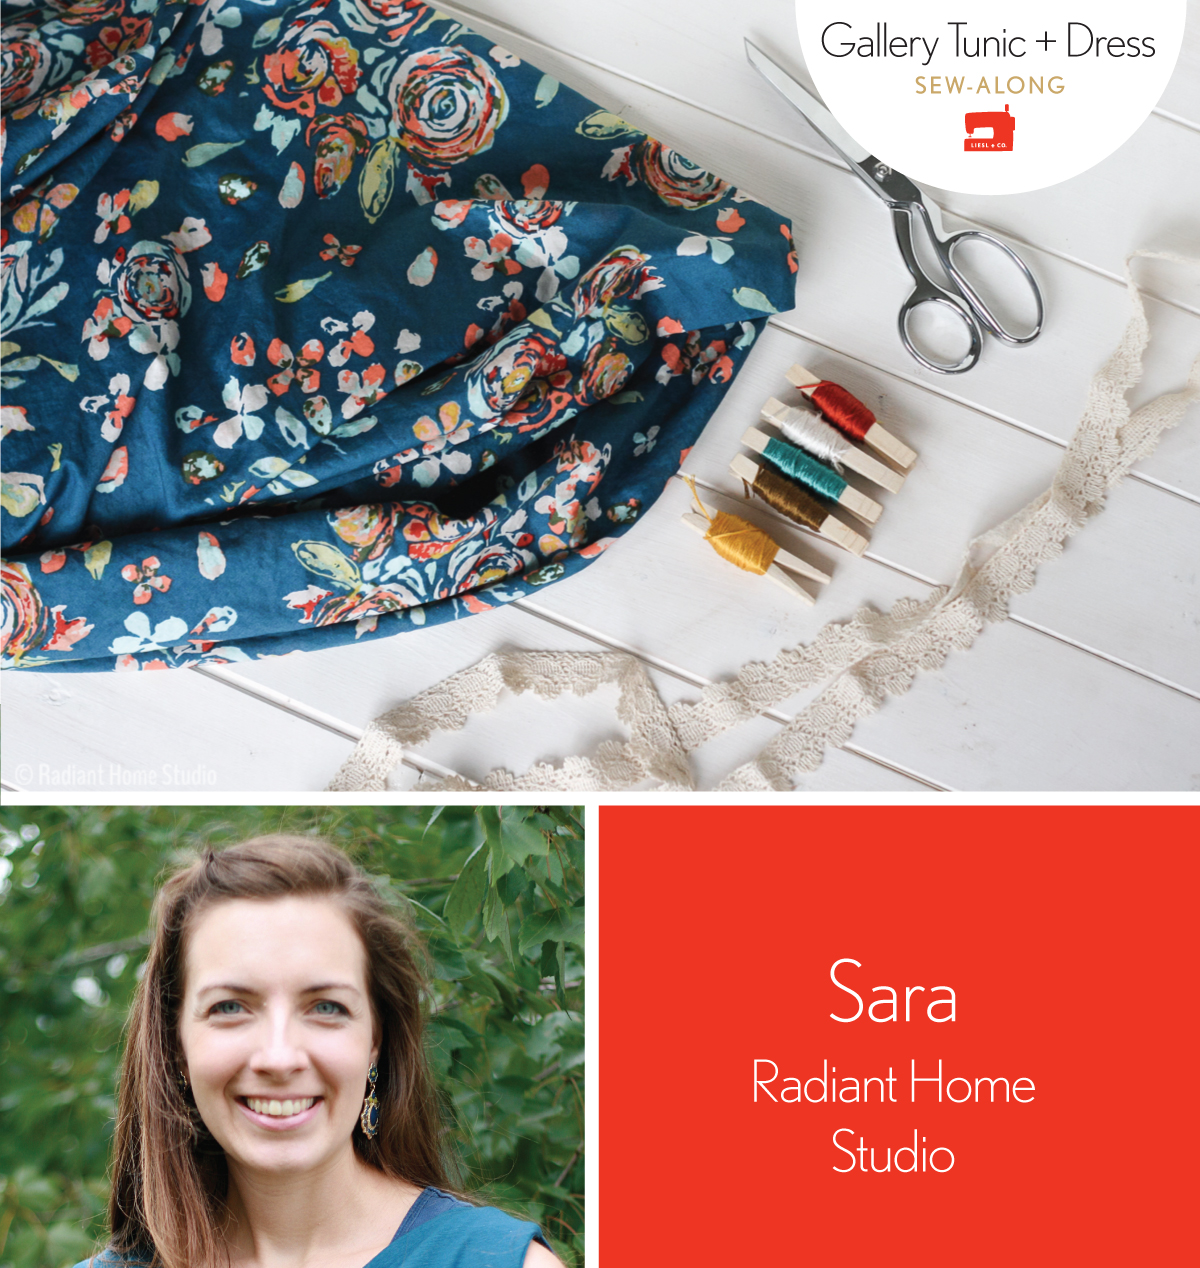 gallery tunic + dress sew-along panelist: sara from radiant home studio